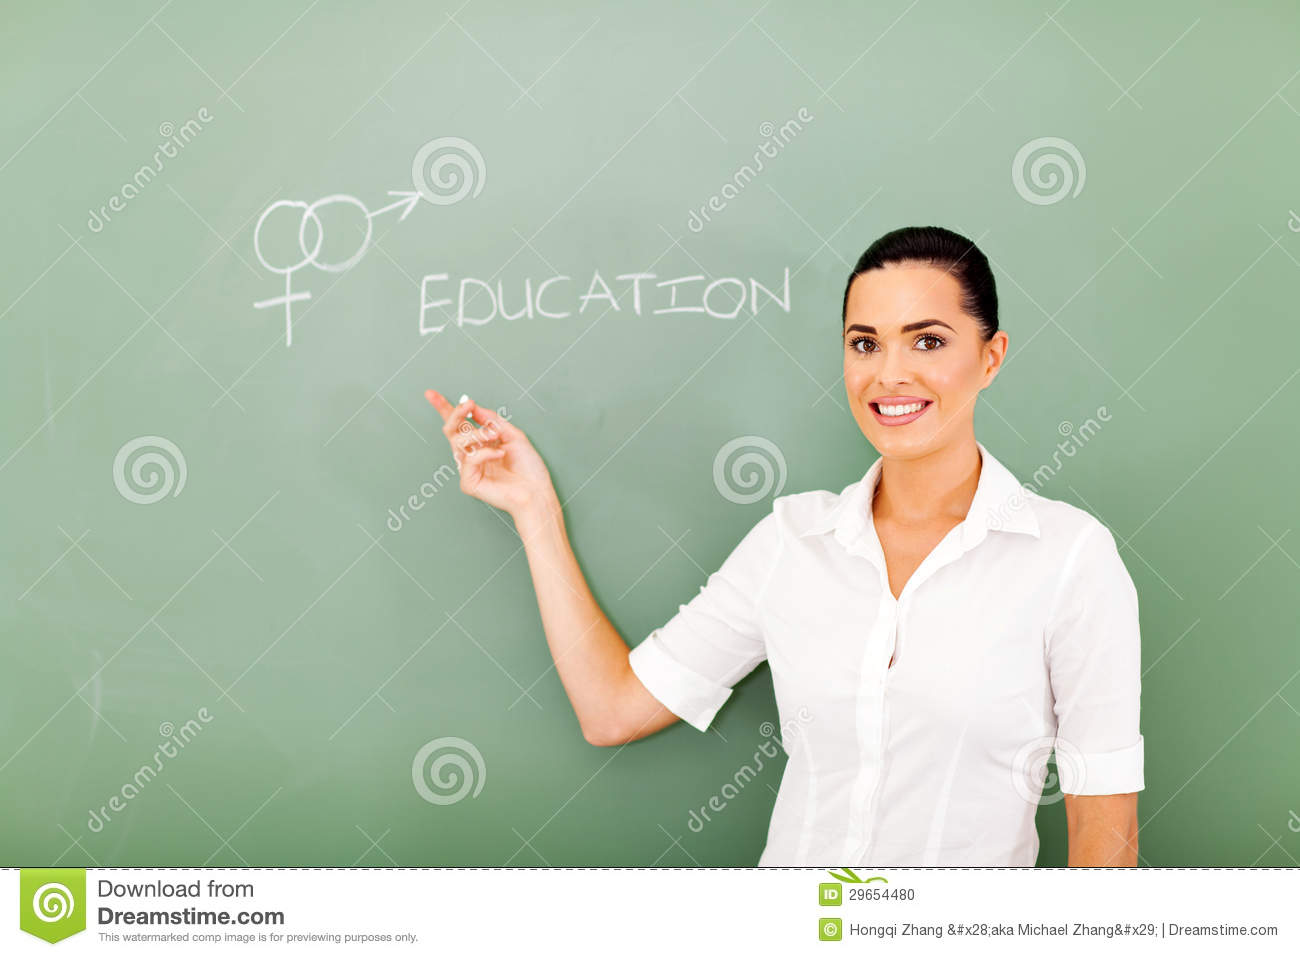 Sex Education Stock Photo - Image: 29654480: www.dreamstime.com/stock-photo-sex-education-image29654480